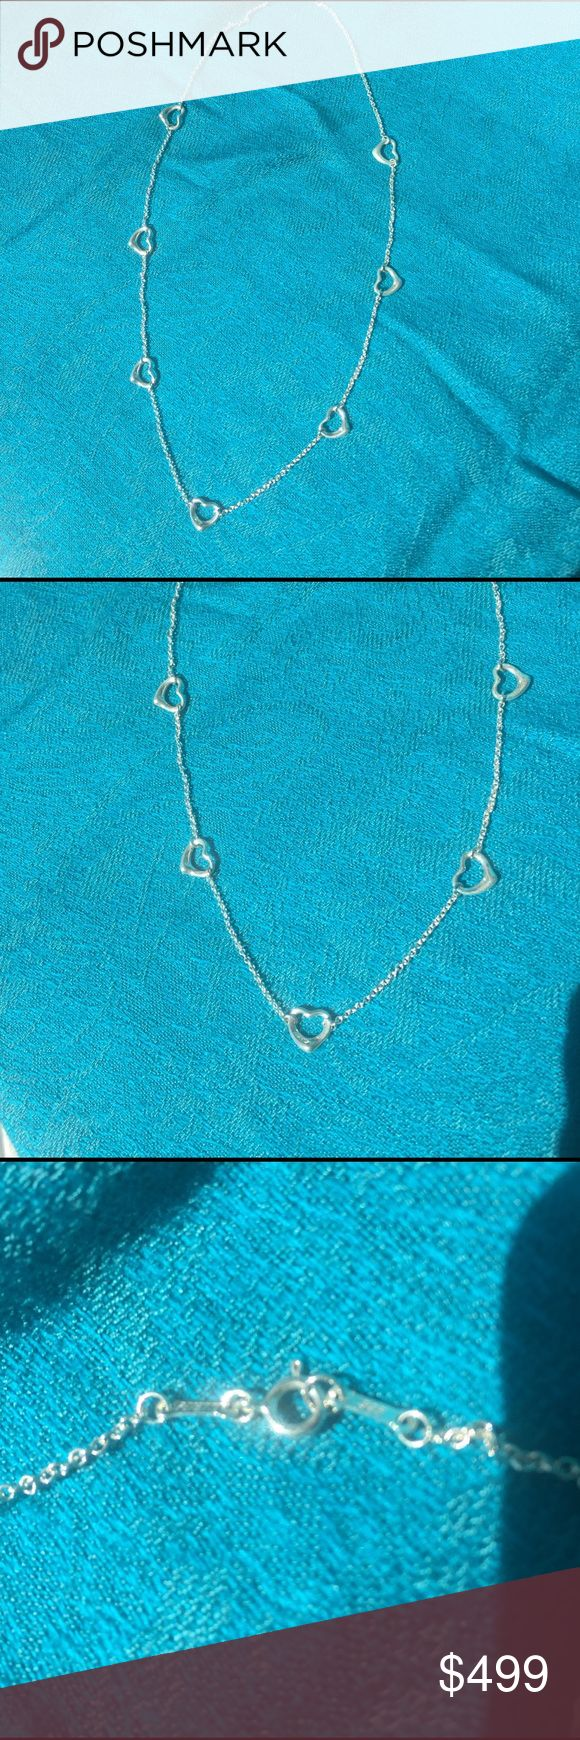 "💍Tiffany & Co. RARE Peretti 7 Open Heart Necklace Auth Tiffany & Co. RARE Elsa Peretti 7 Open Heart Necklace. Approx 19"" Marked Peretii, 925, Spain, Tiffany & Co. Circa 1990's ✨NO BUNDLE OPTION - NO 🅿️ay🅿️al ACCEPTING REASONABLE OFFERS😊 Tiffany & Co. Jewelry Necklaces"